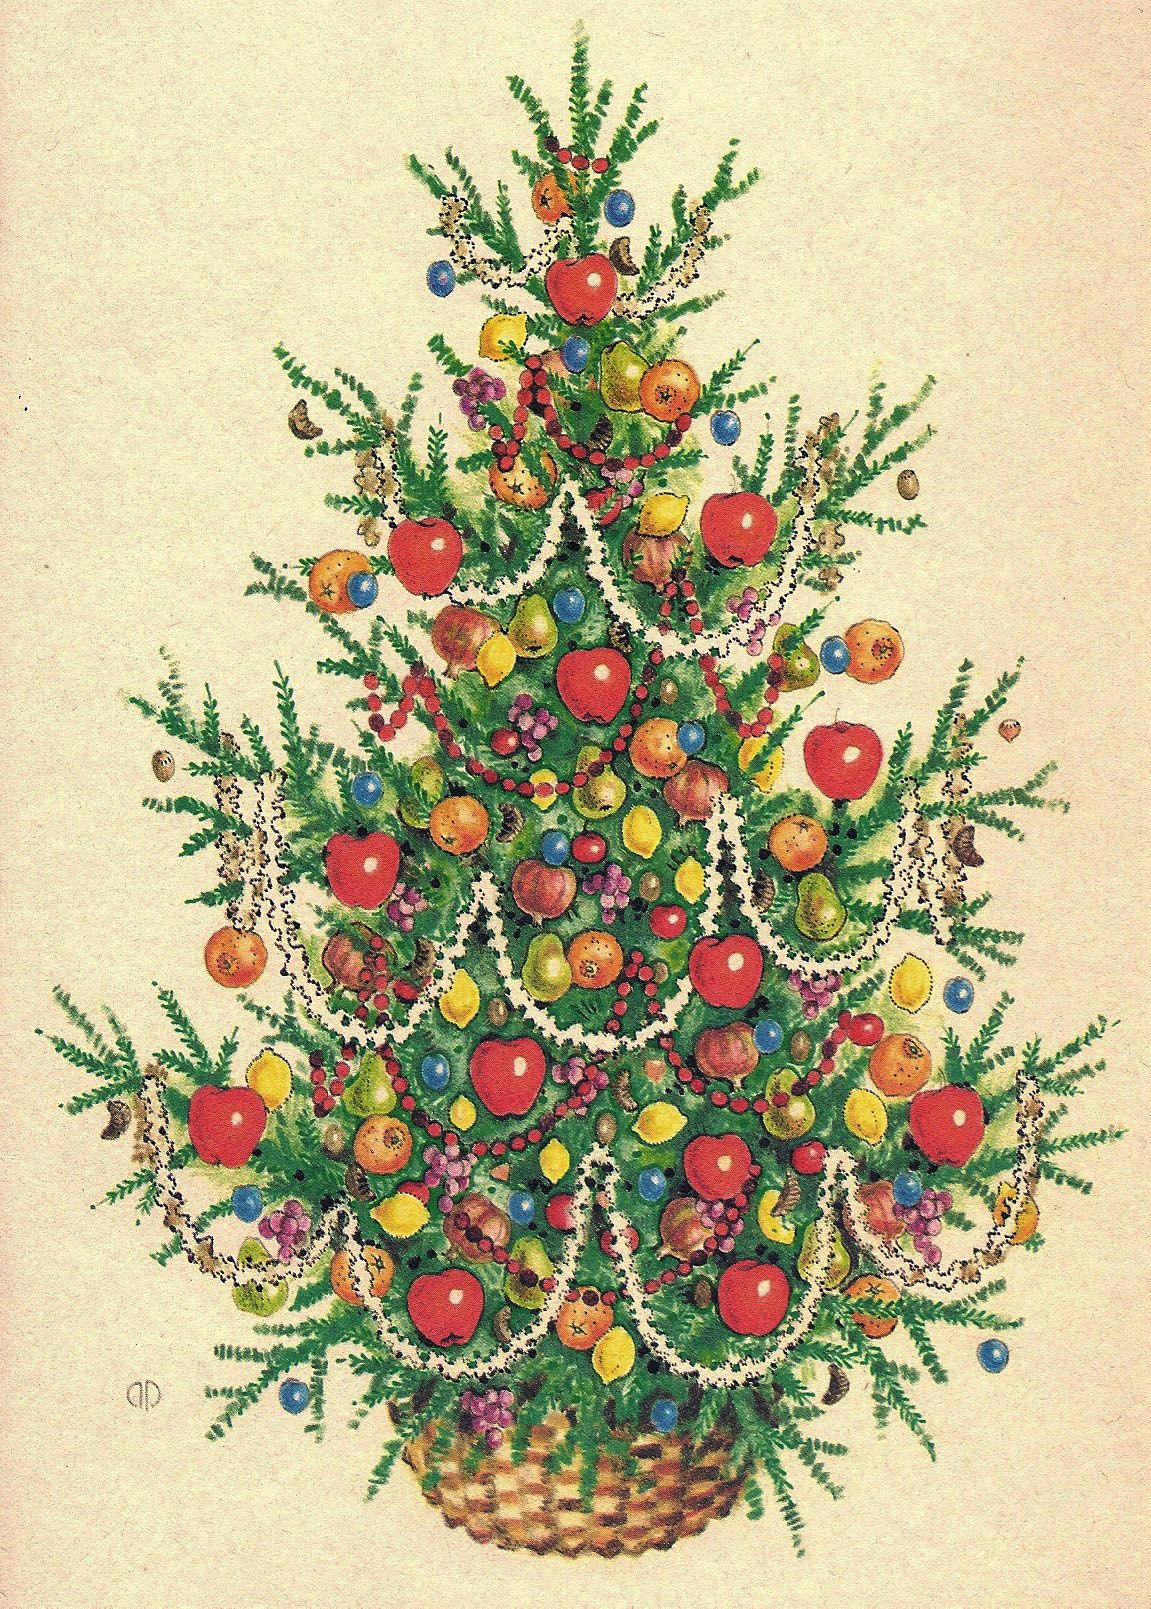 Christmas tree ink oil pencil 1970s by melanie renn for gordon christmas tree ink oil pencil by melanie renn for gordon fraser gallery published as a greeting card m4hsunfo